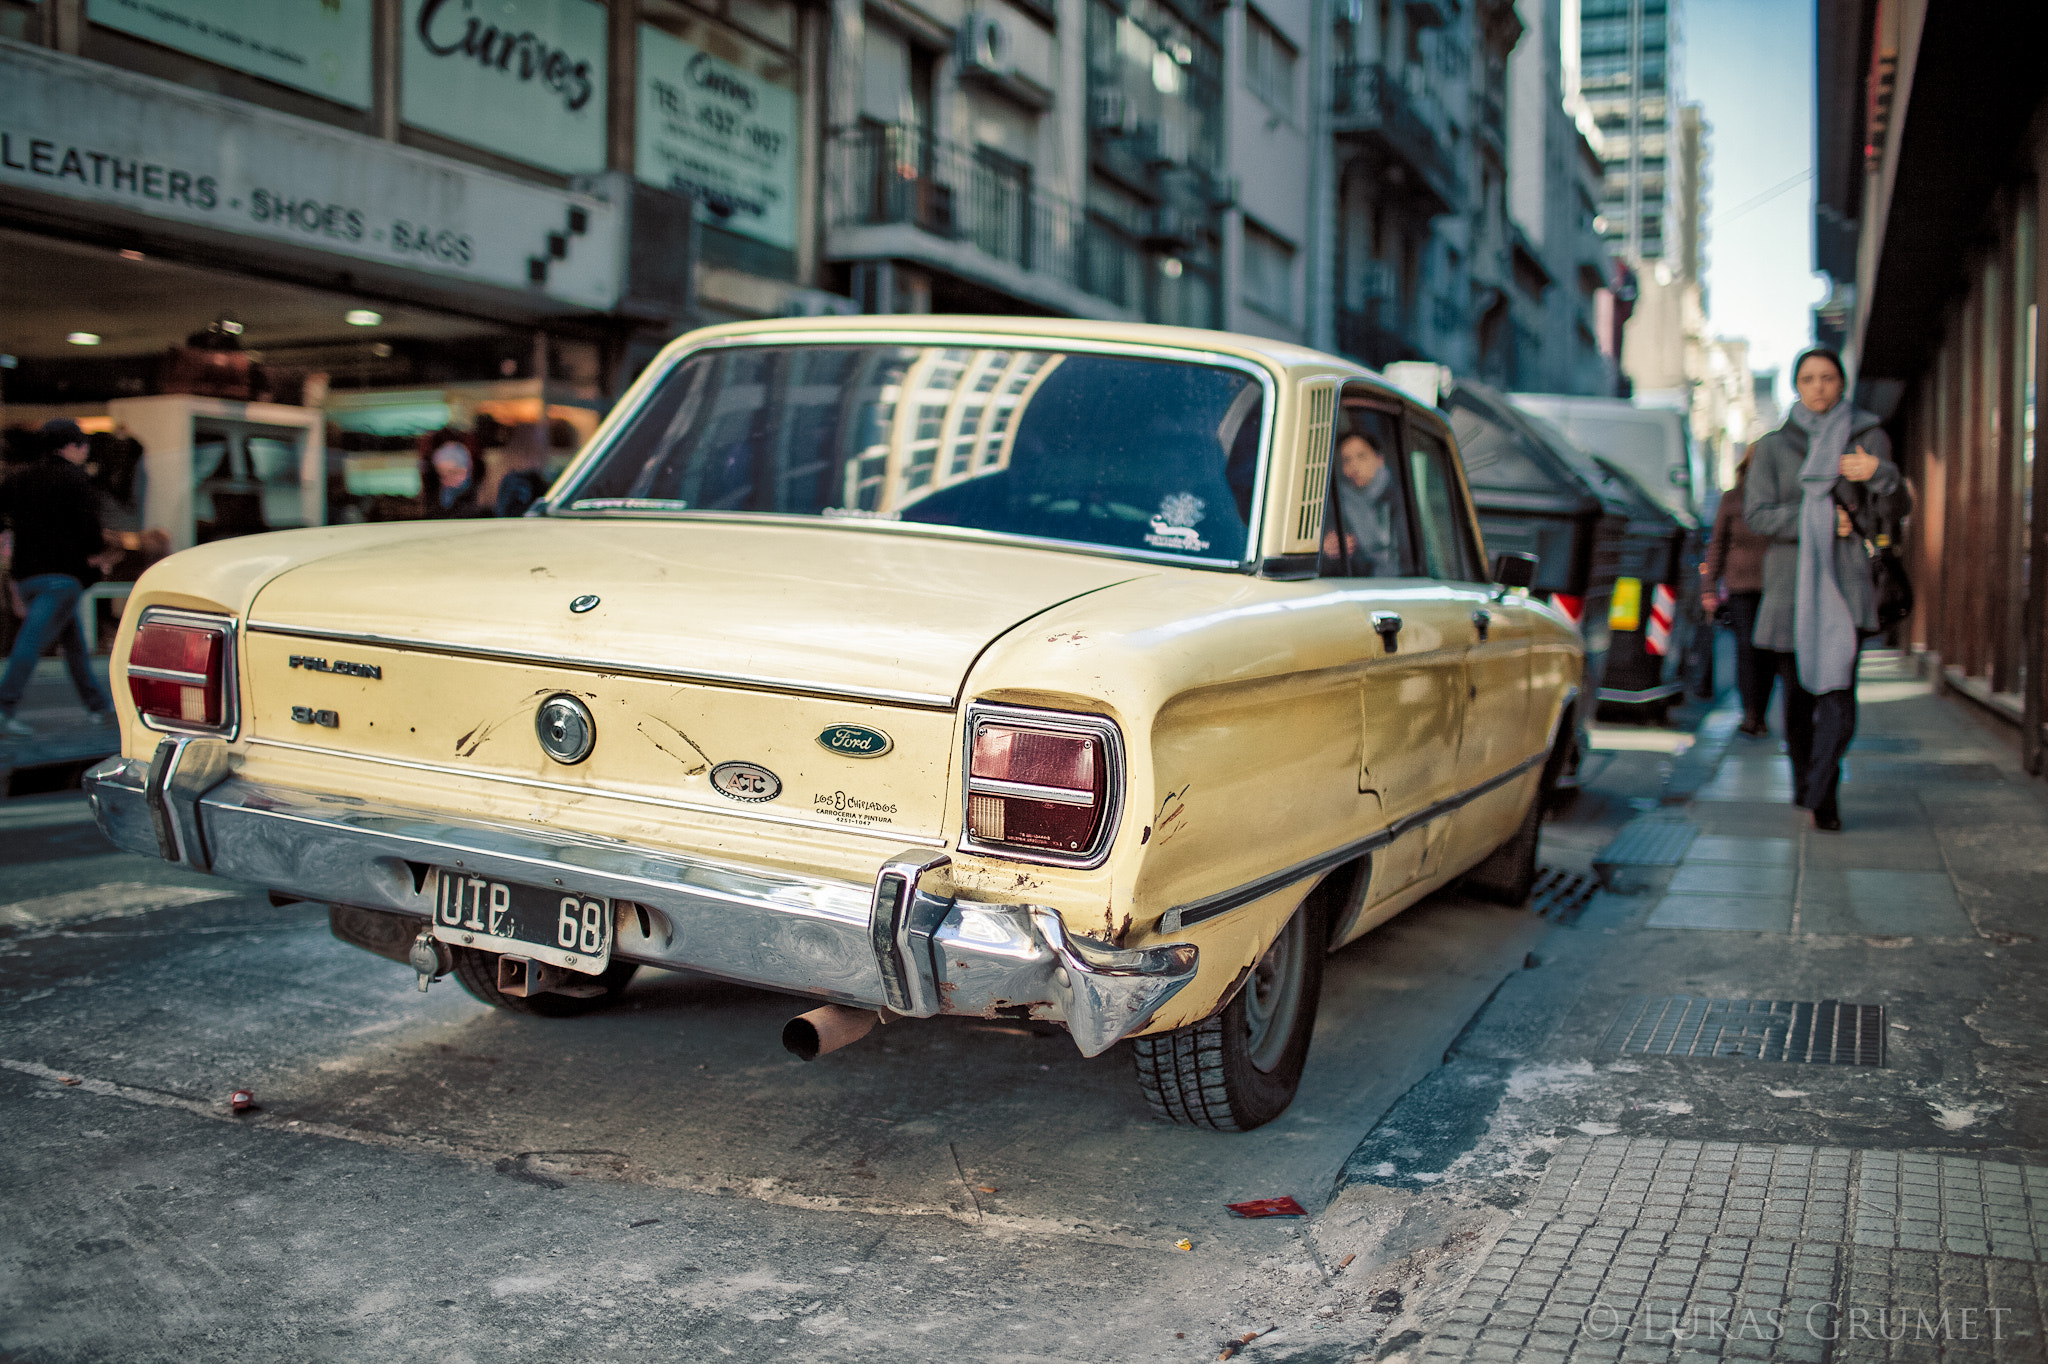 Photograph Ford FALCON by Lukas Grumet on 500px